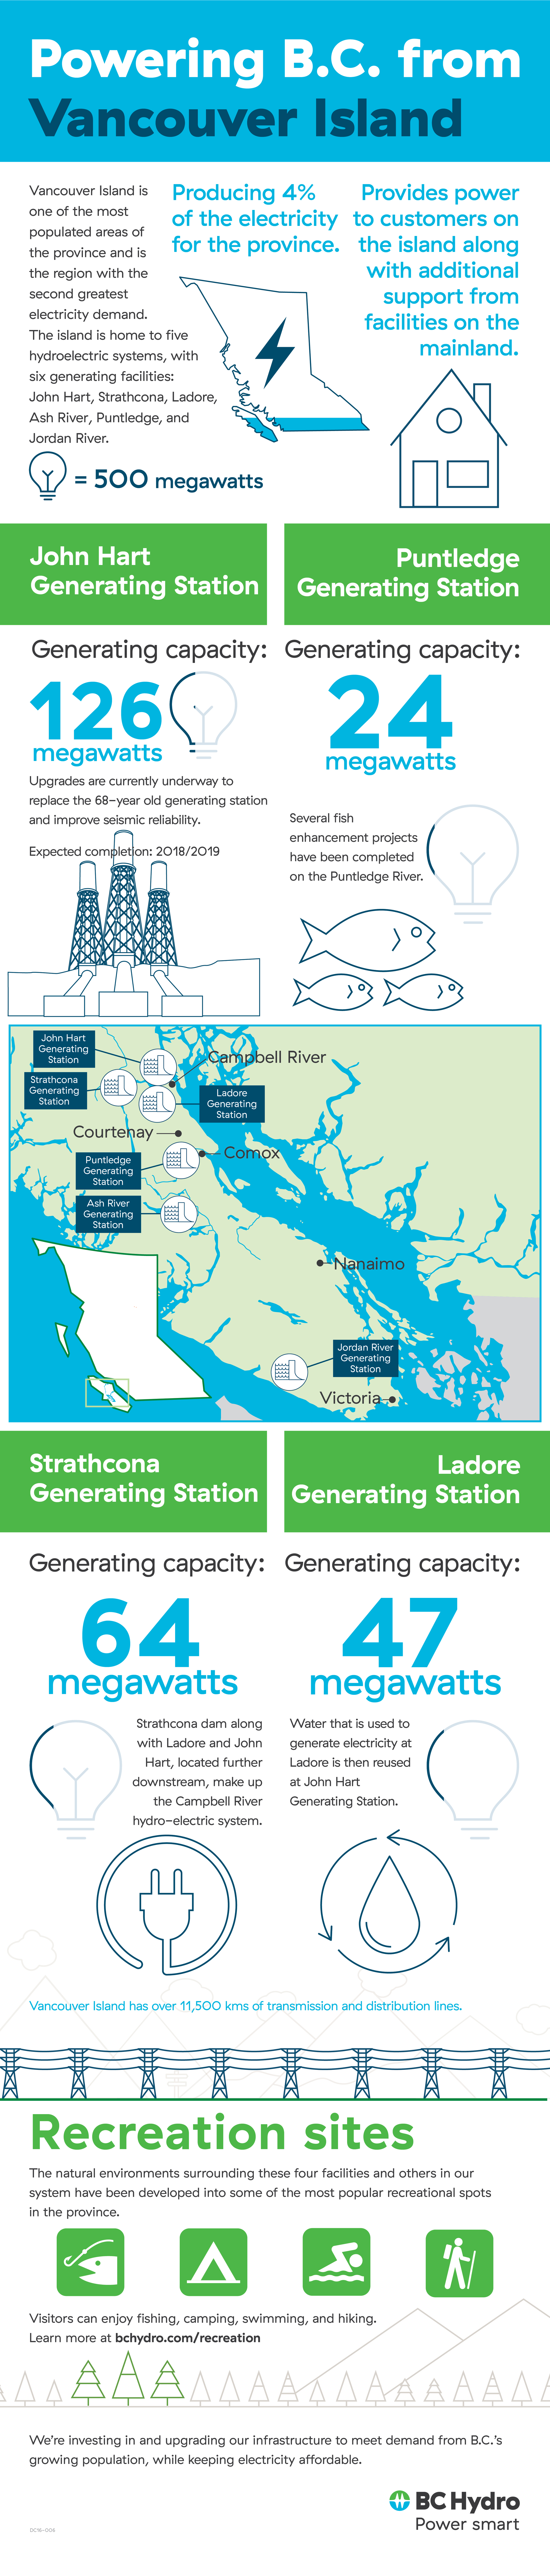 DC16-006-Vancouver Island Infographic